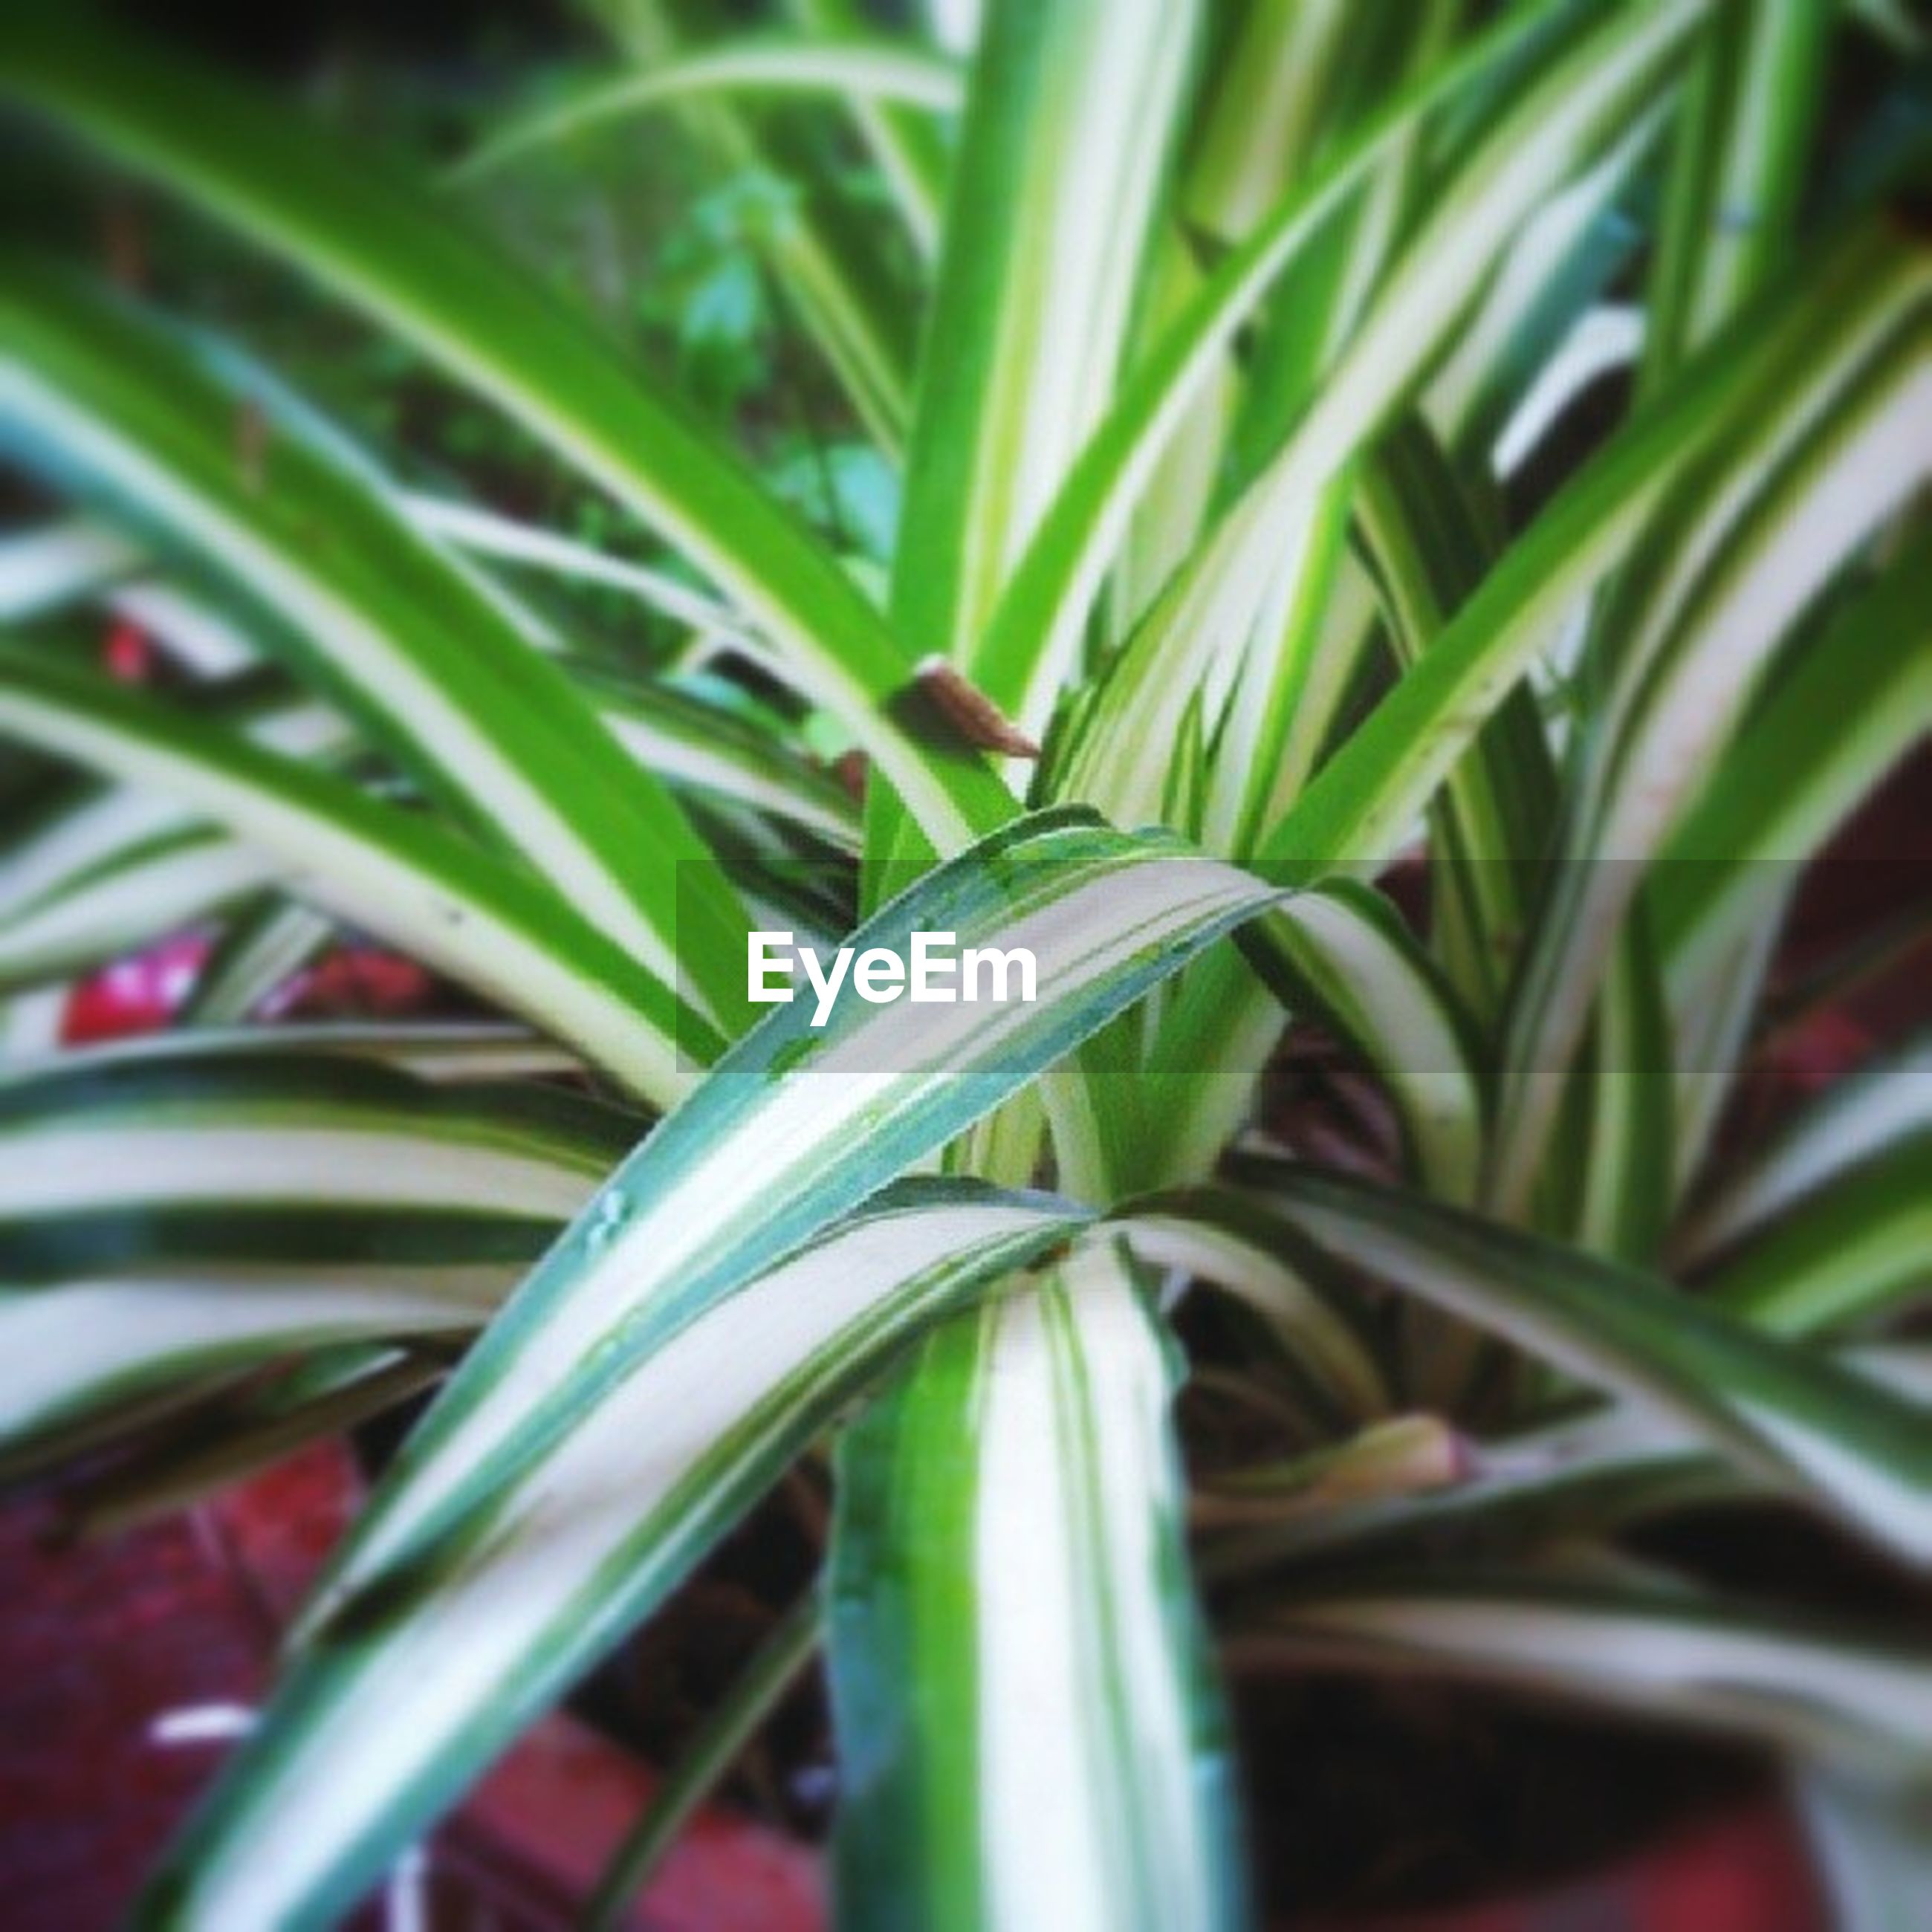 green color, growth, plant, leaf, freshness, close-up, nature, selective focus, beauty in nature, growing, green, focus on foreground, stem, no people, fragility, day, outdoors, field, blade of grass, backgrounds